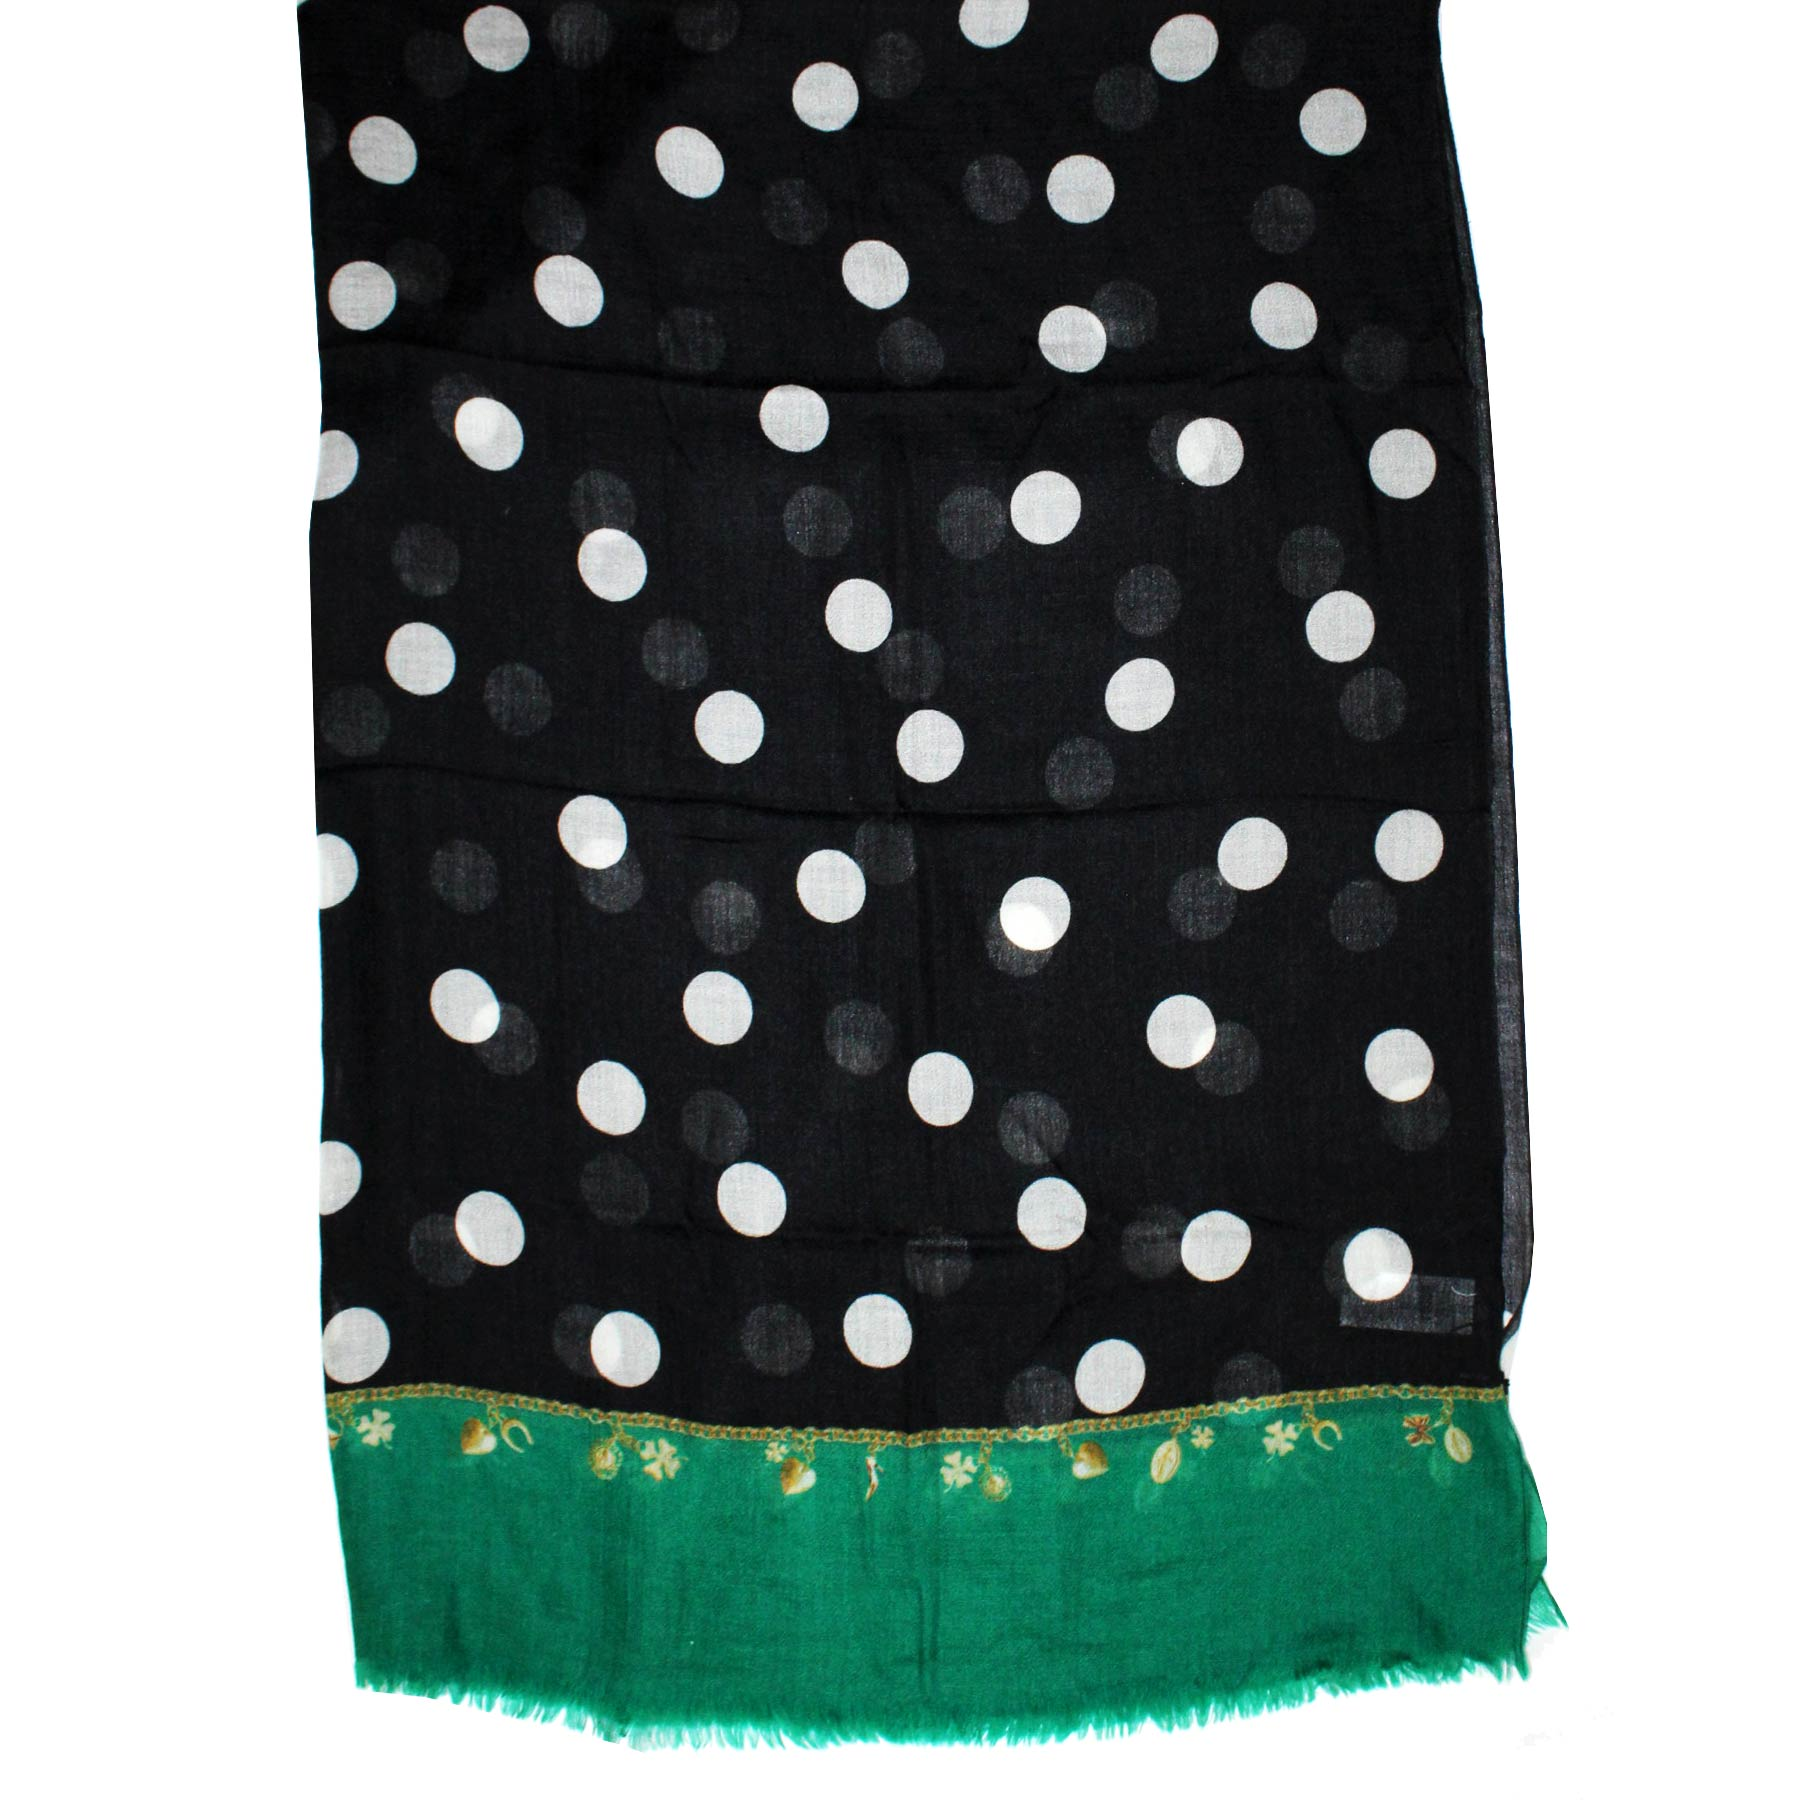 Scarf Black Green Dots Lucky Charm New